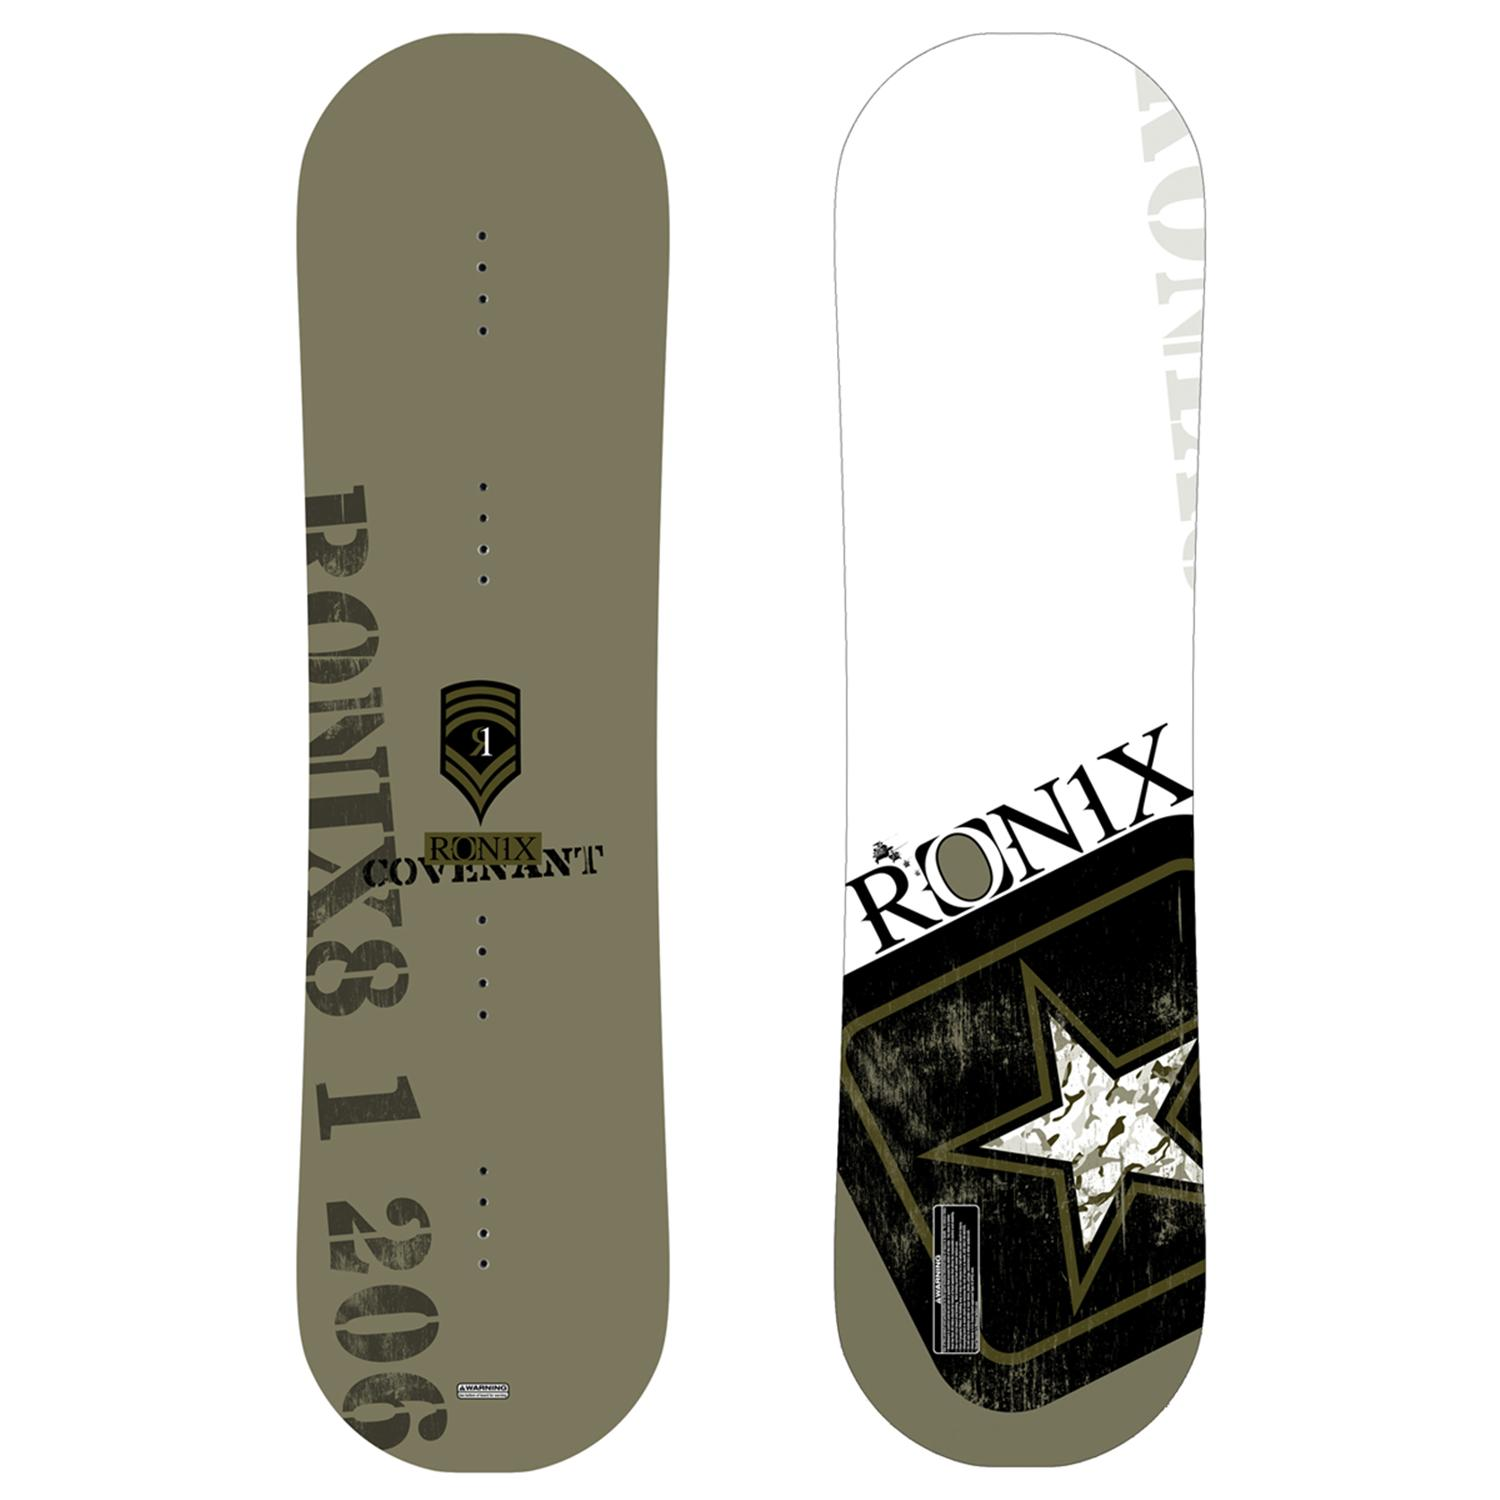 COVENANT WAKEBOARD RONIX 2008